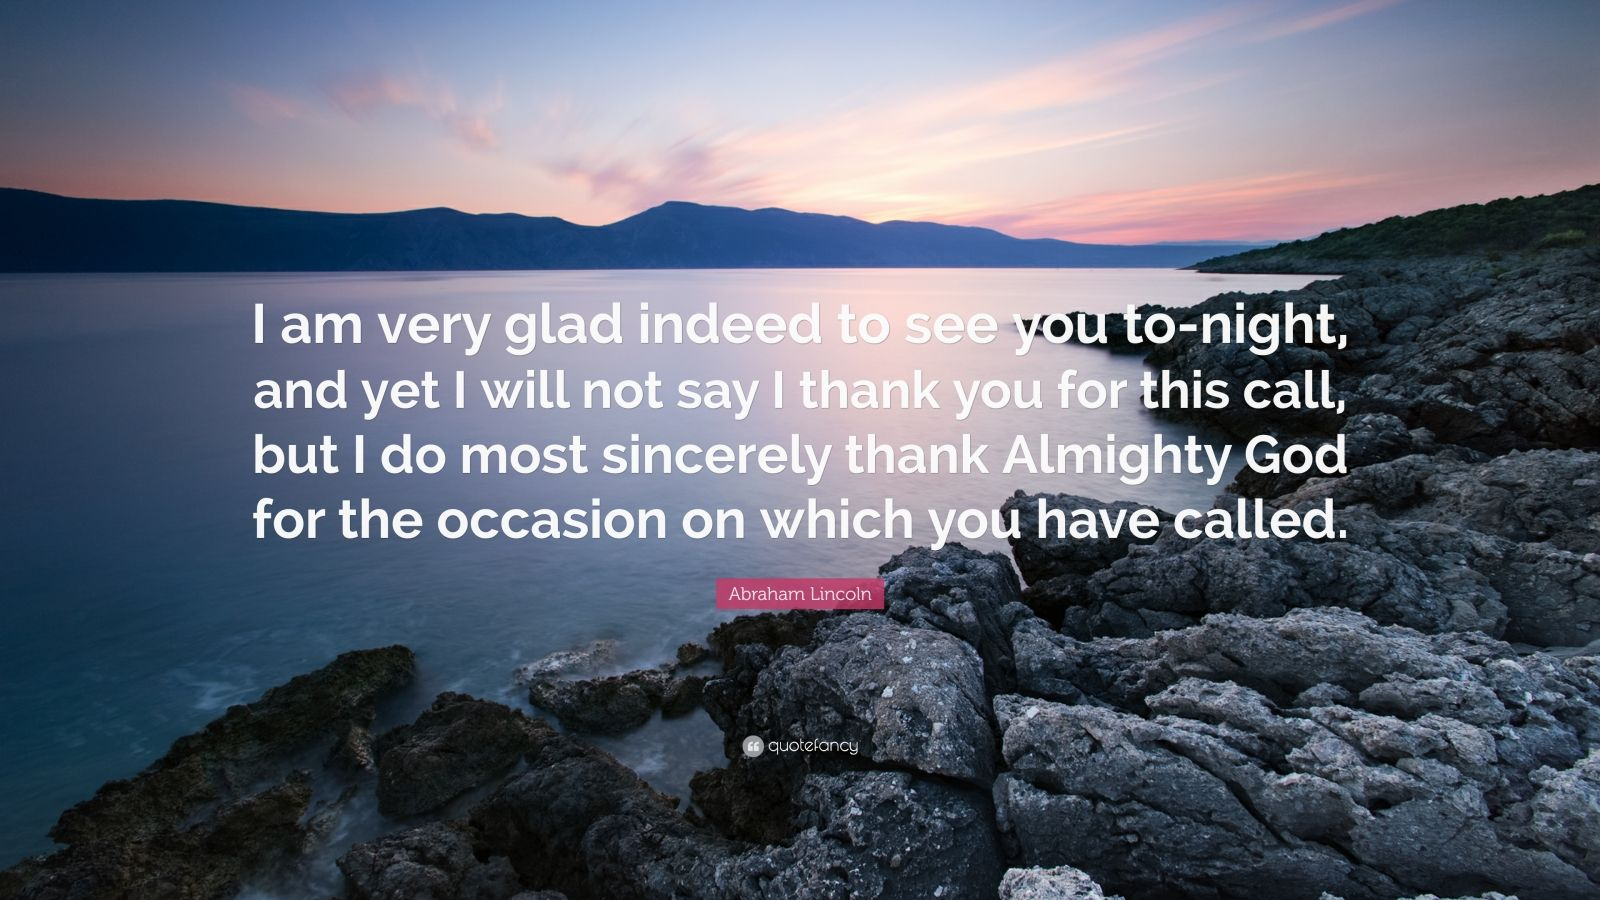 "Abraham Lincoln Quote: ""I am very glad indeed to see you to-night, and yet I will not say I thank you for this call, but I do most sincerely thank Almighty God for the occasion on which you have called."""